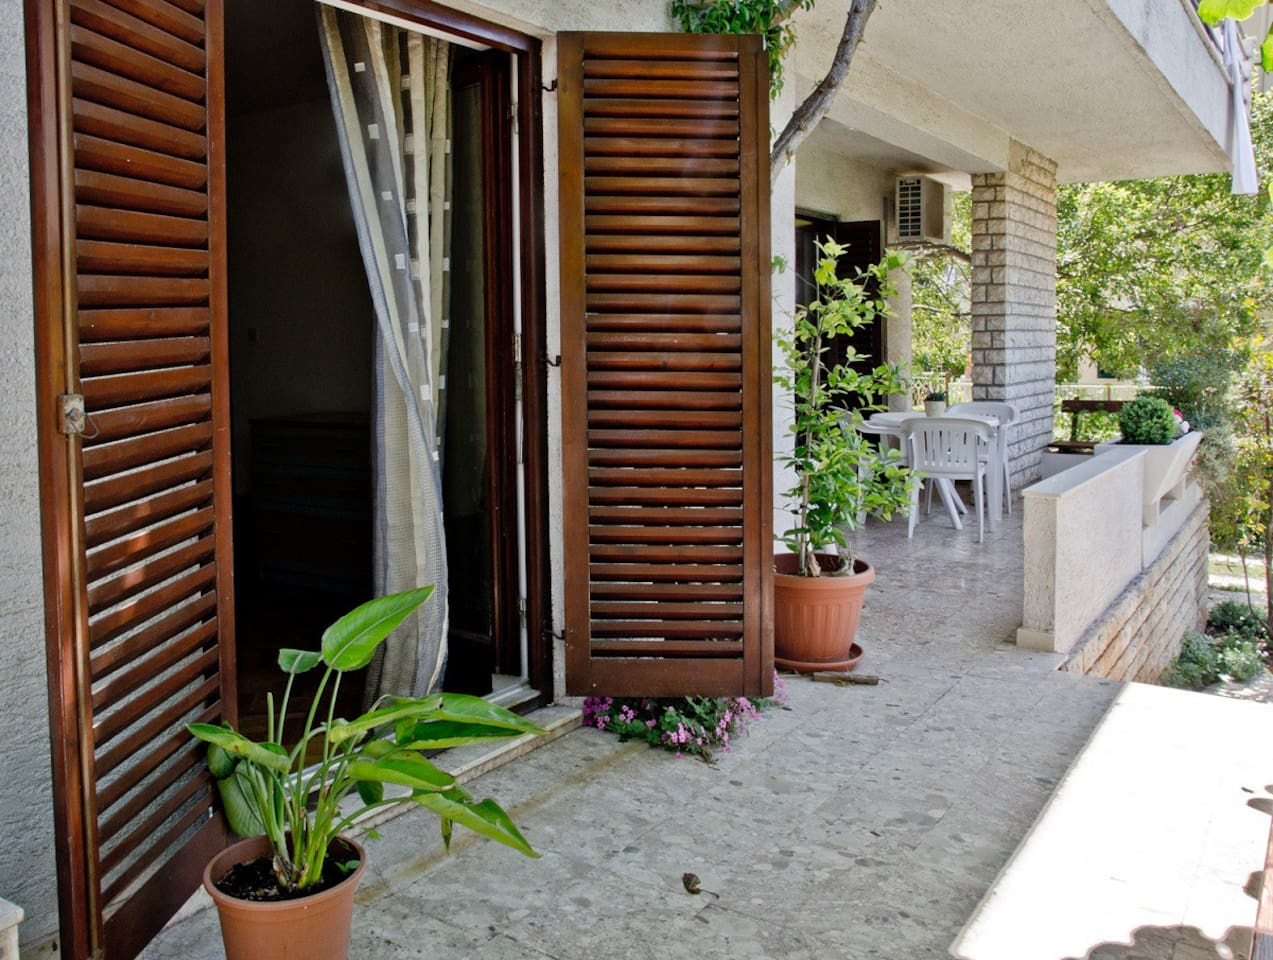 Terrace and bedroom entrance